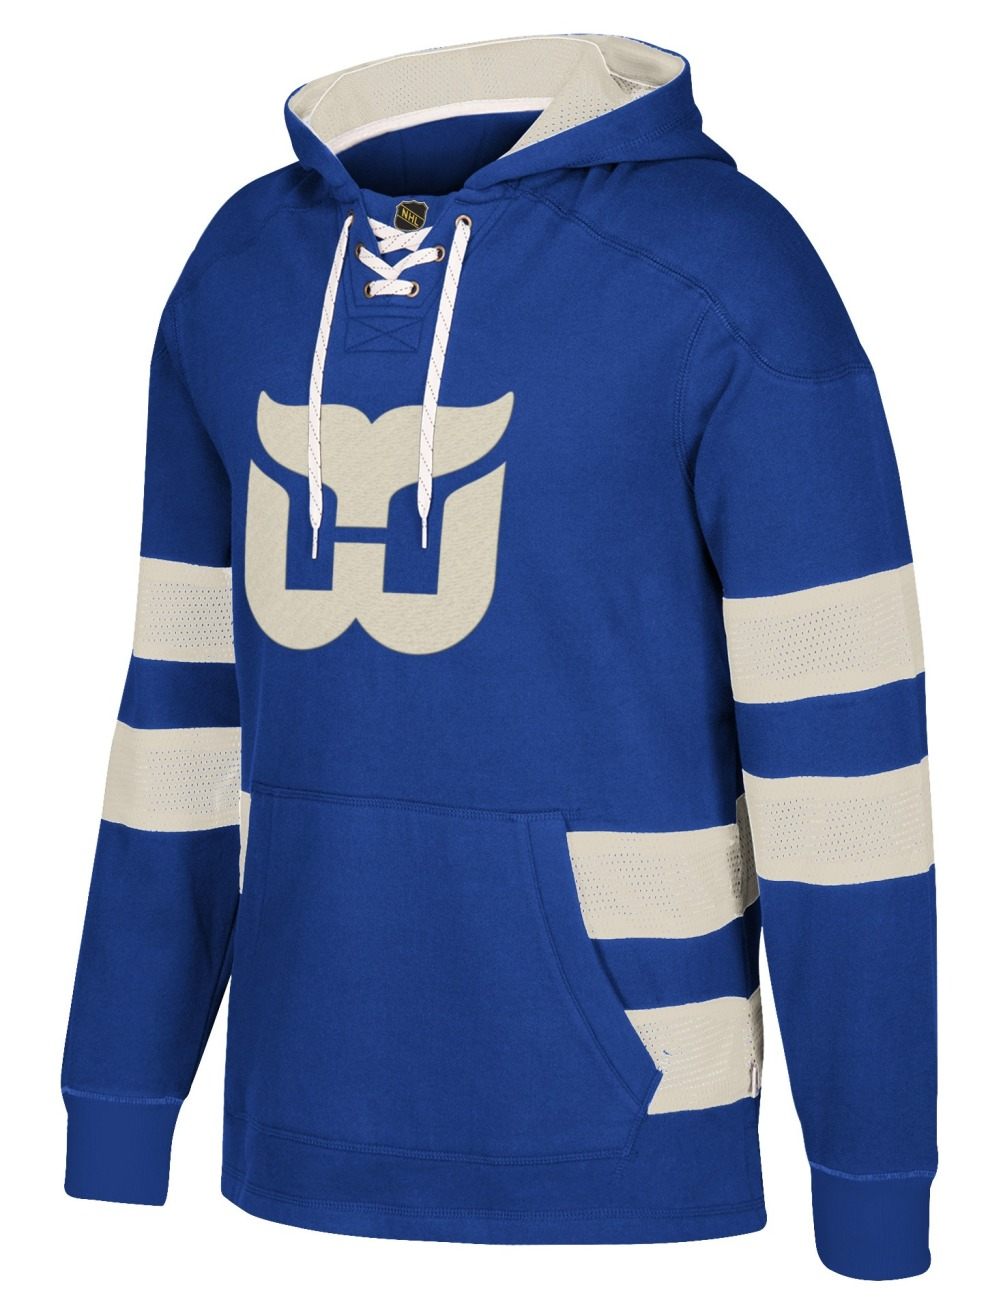 "Hartford Whalers CCM NHL ""Penalty Kill"" Men's Vintage Jersey Sweatshirt"